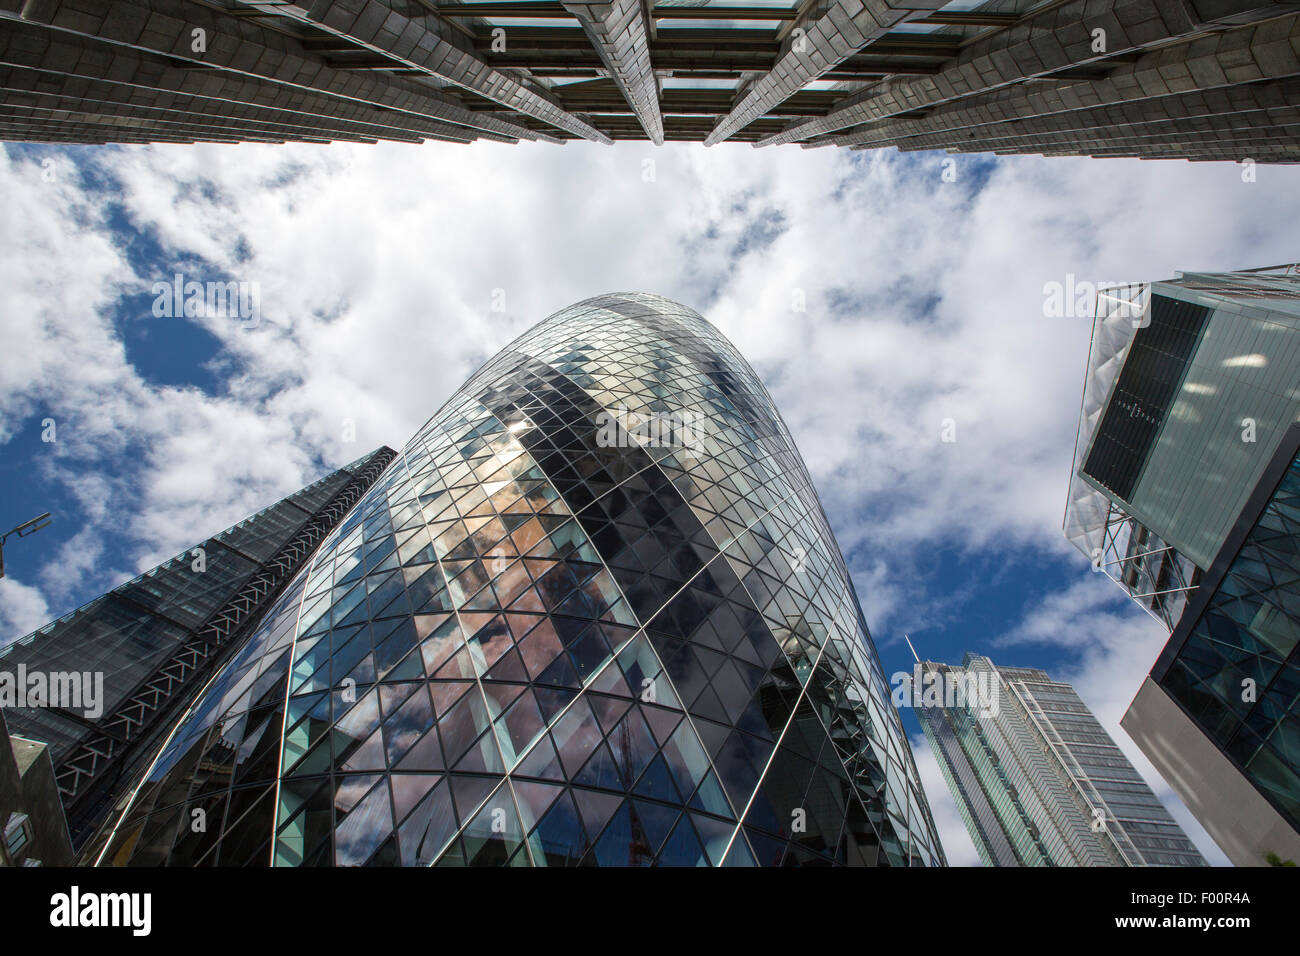 The Swiss Re Tower and Leadenhall Building in the City of London. - Stock Image